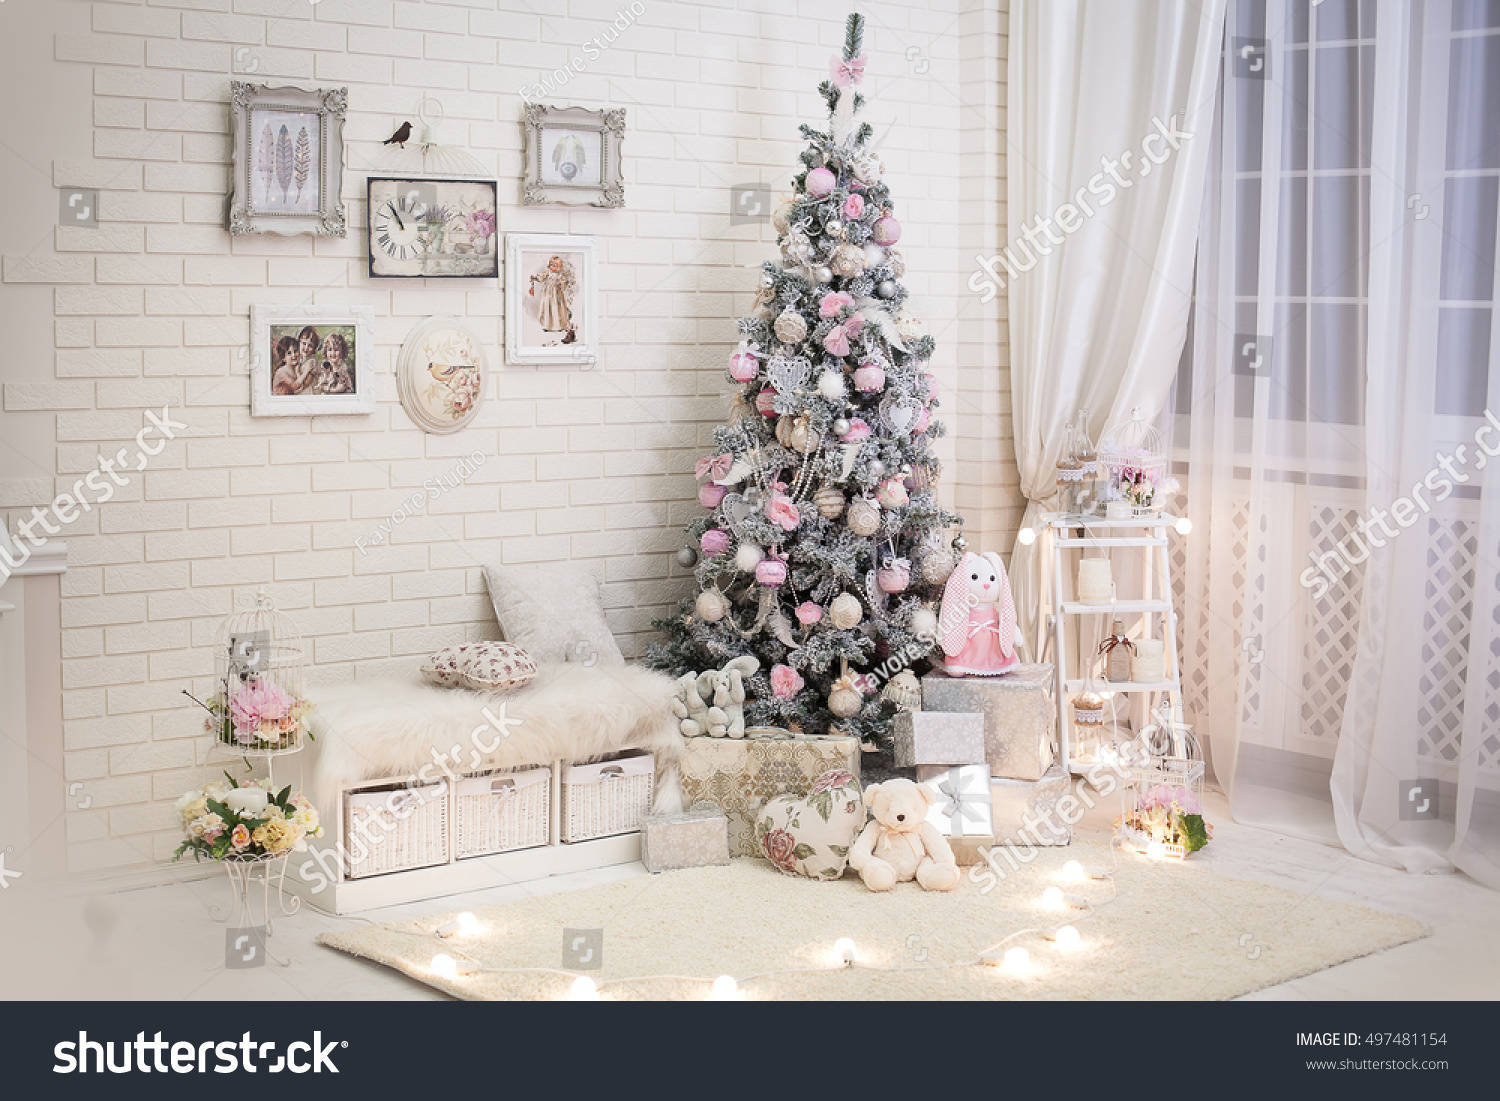 Christmas Tree Pink Shabby Chic Style Stock Photo